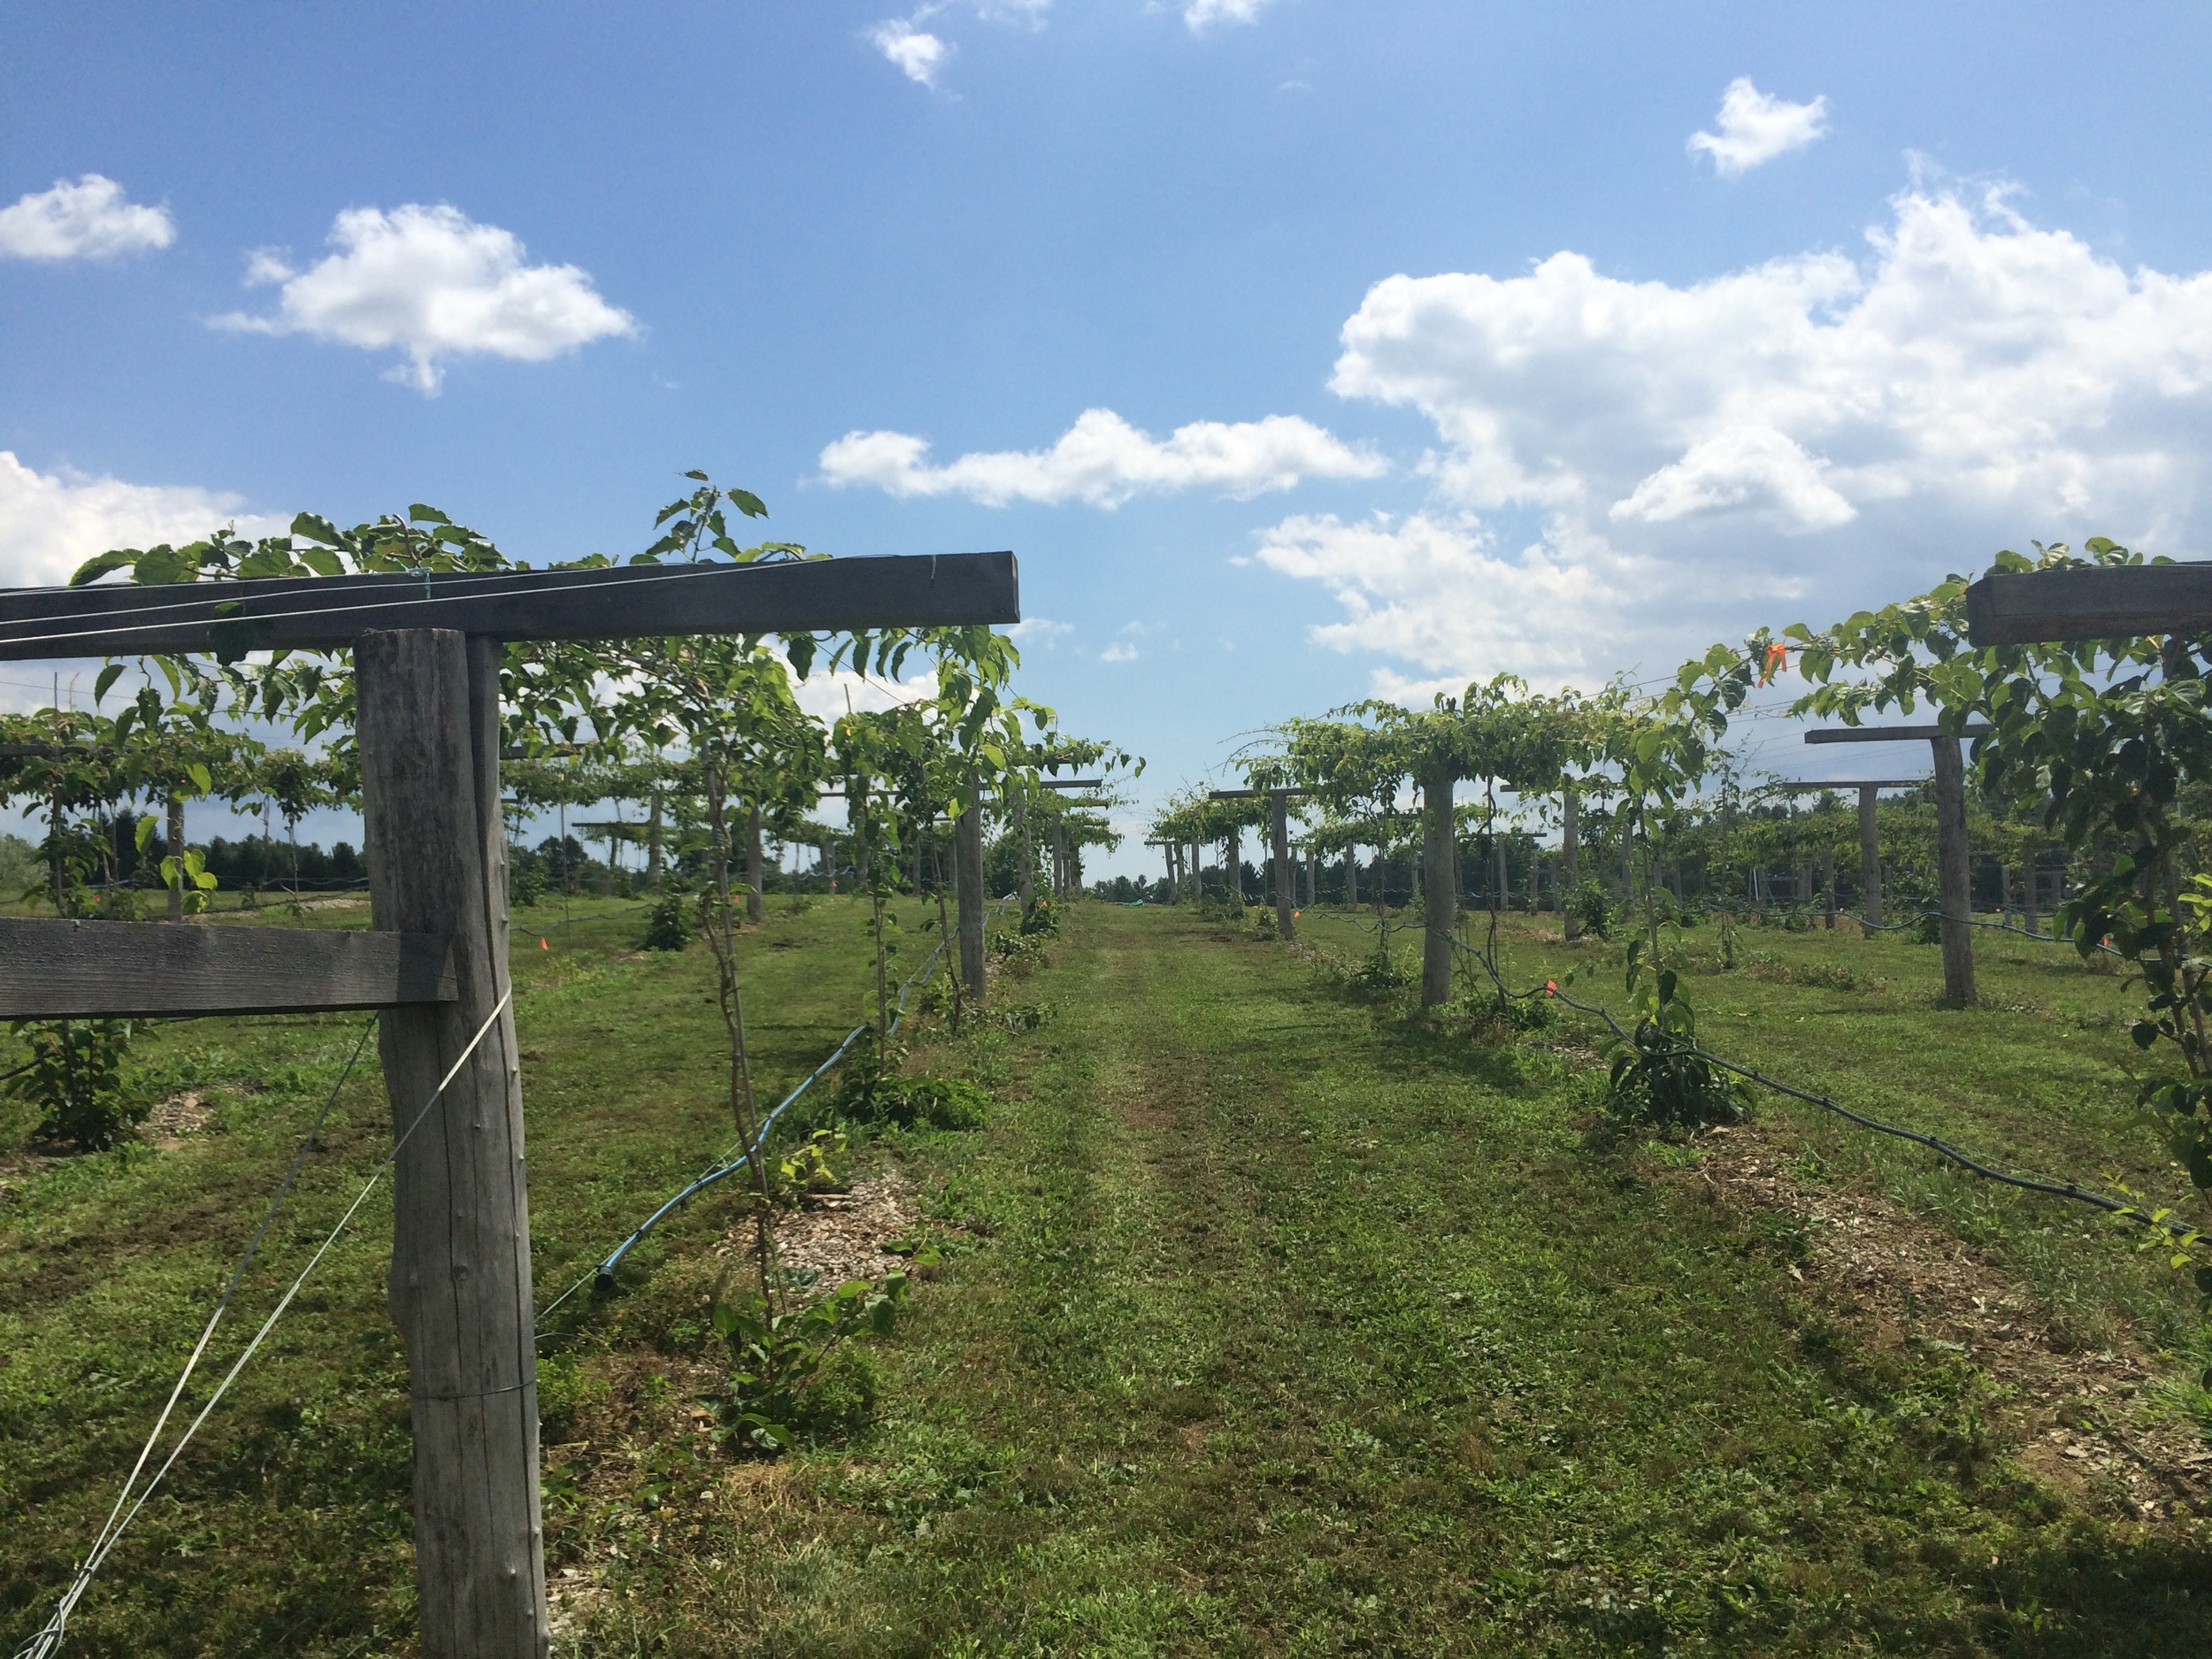 The kiwi vineyard at UNH is three years old, and has just born its first fruit.